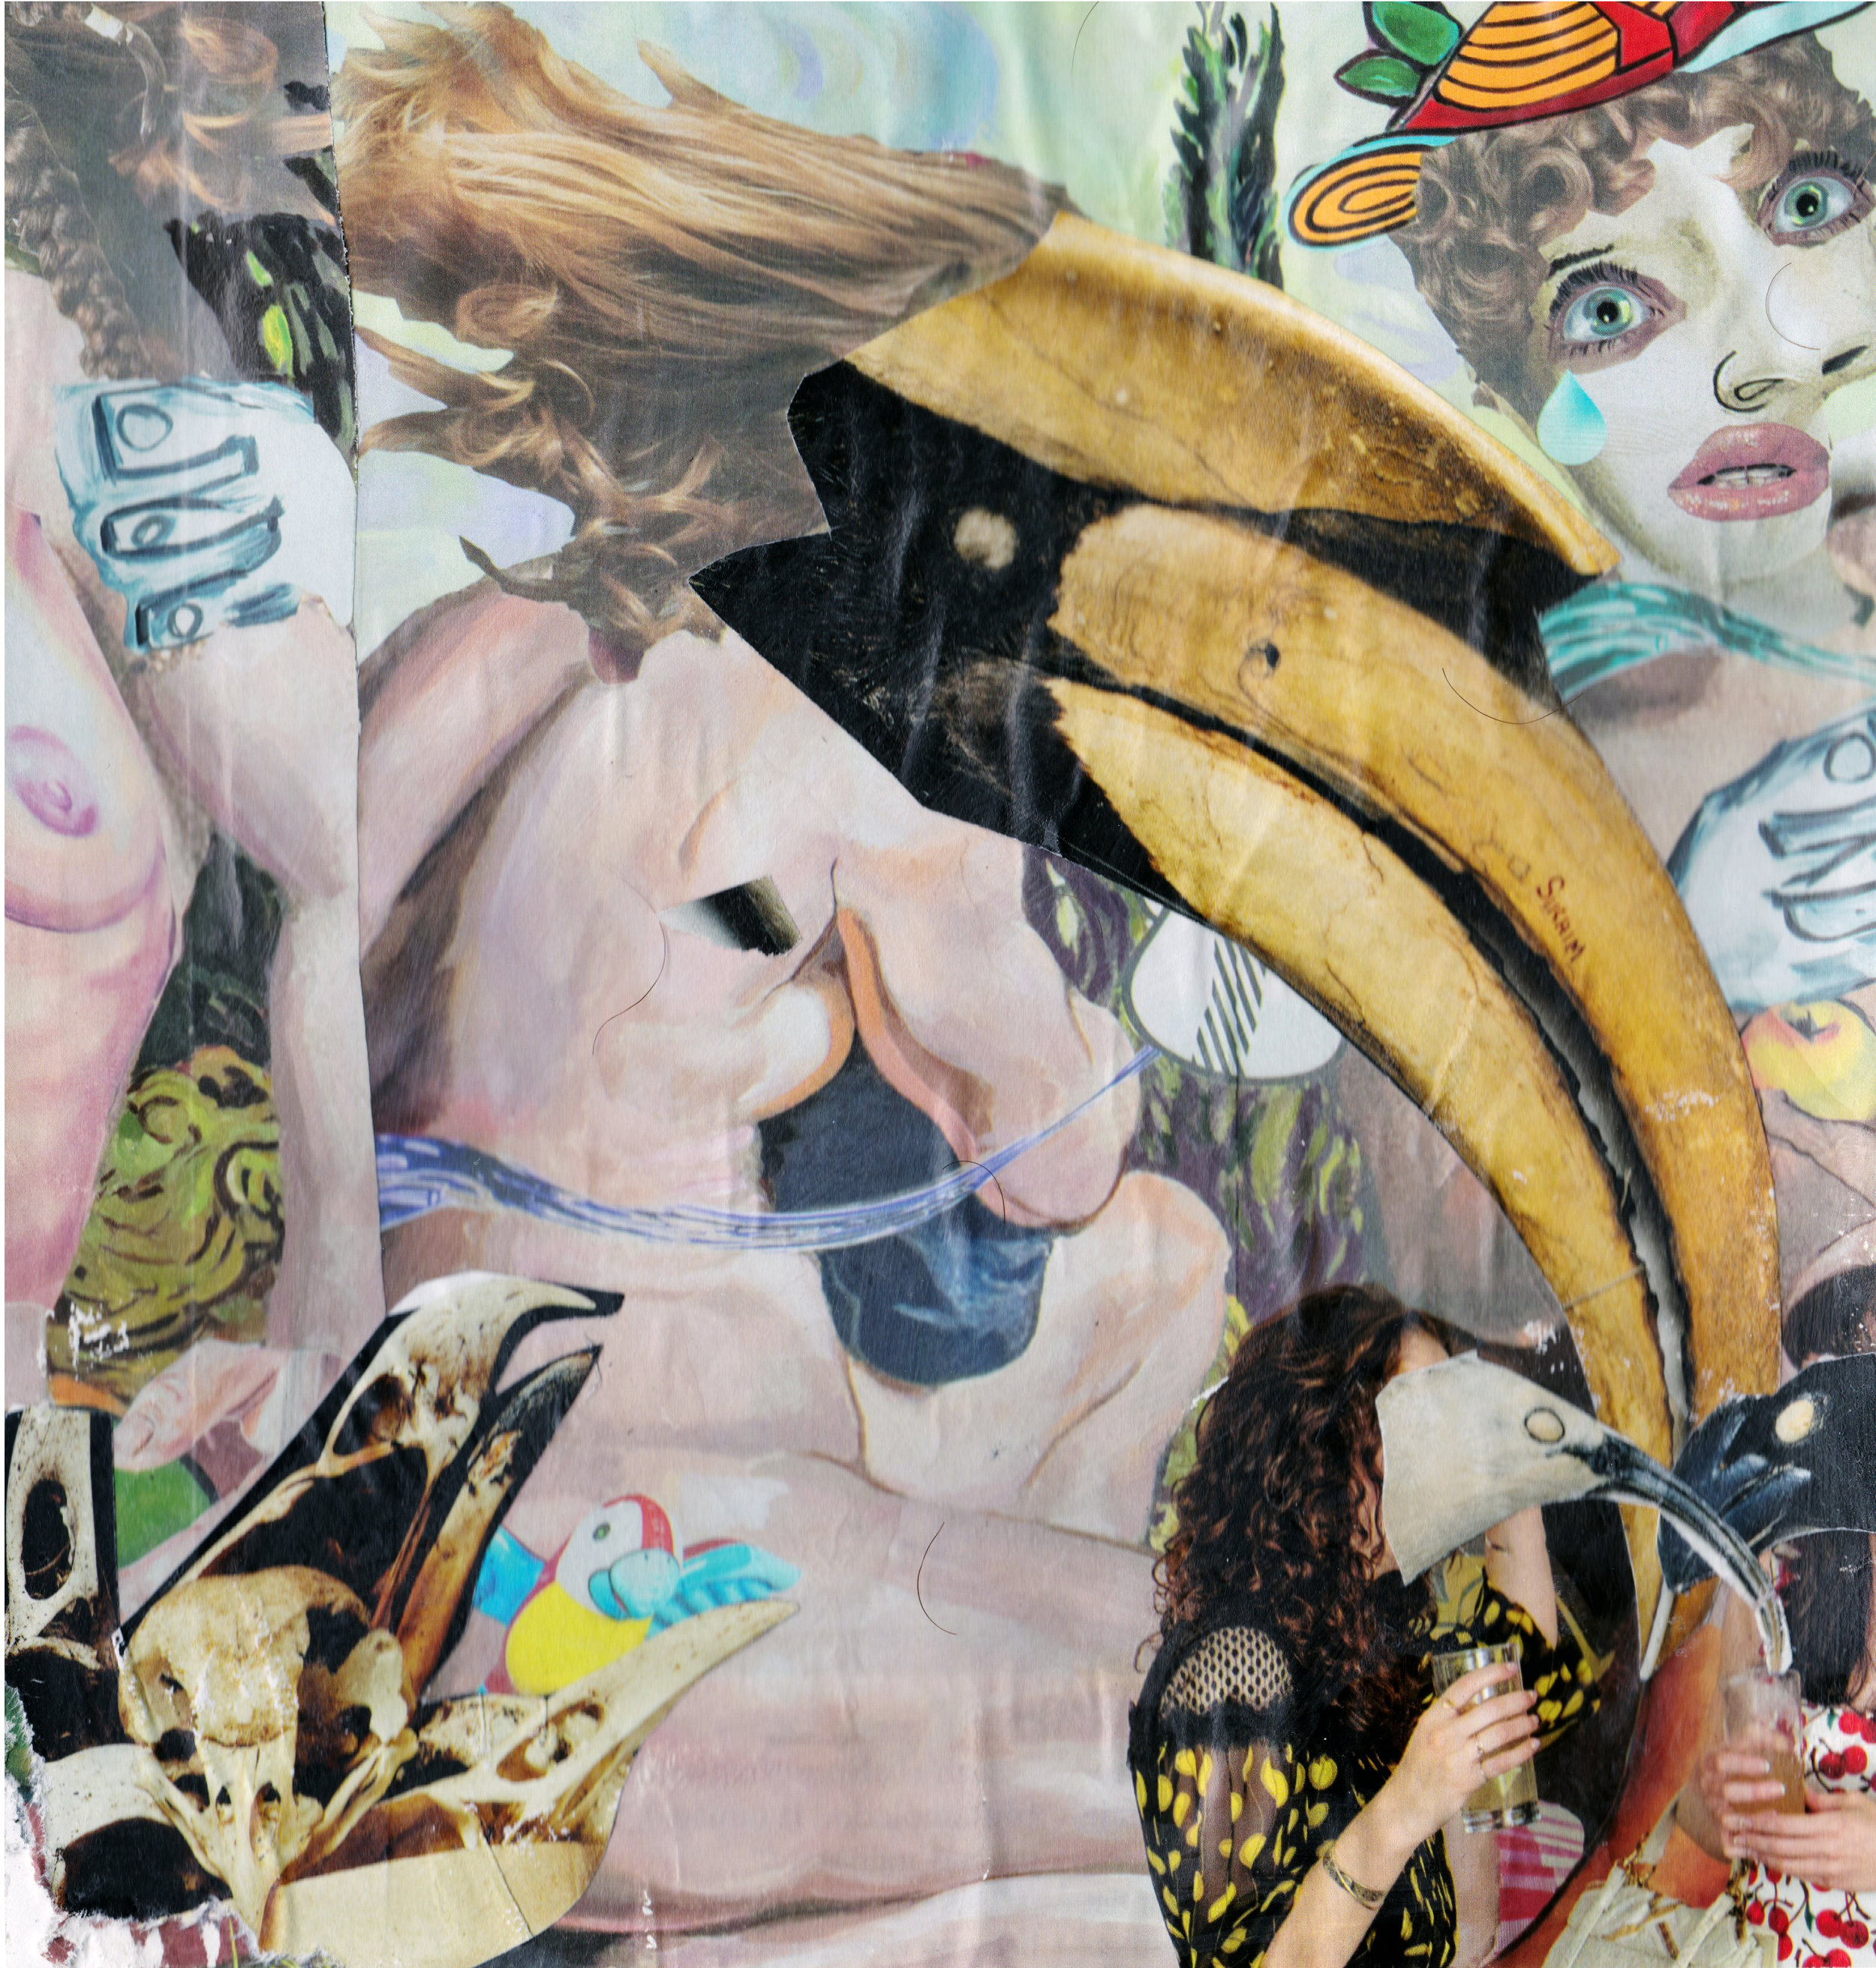 INTRODUCTION TO ART-    Theme Based Collage   Students are asked to appropriate and compile found images into a composition that share a theme.  Collage on Paper